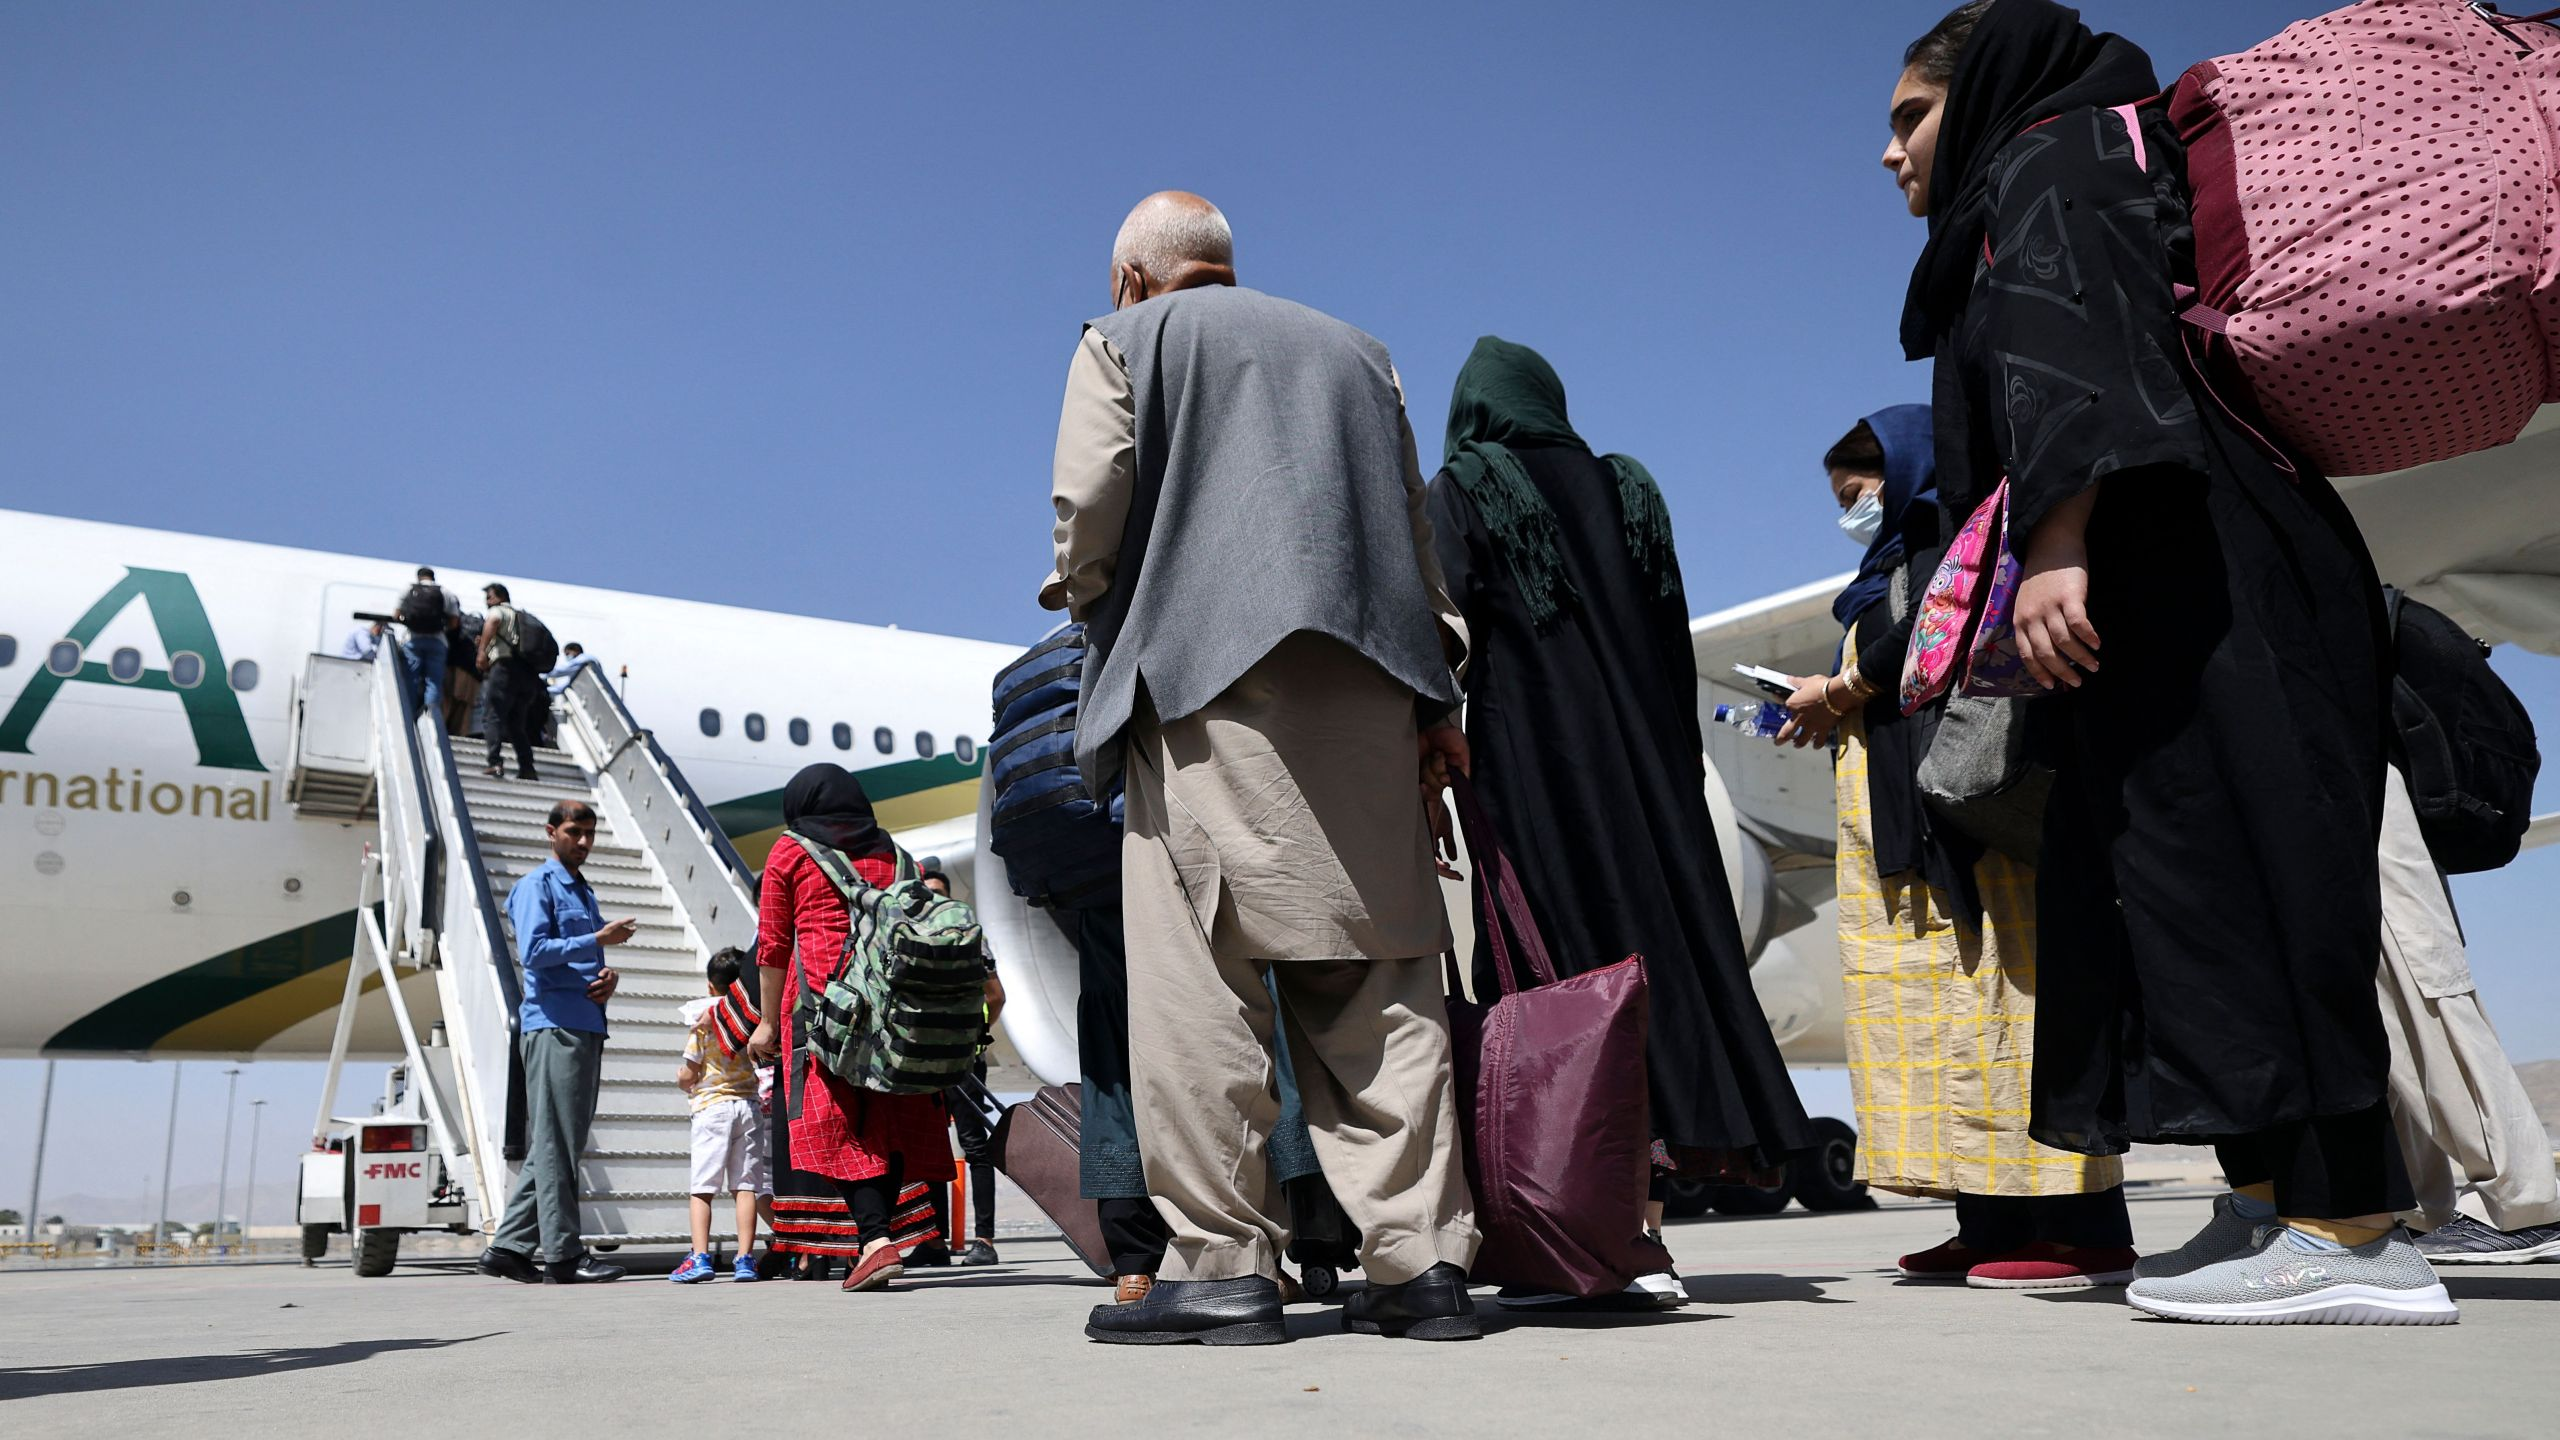 Passengers stand in a queue to board a Pakistan International Airlines plane, the first international commercial flight to land since the Taliban retook power in Afghanistan, at the airport in Kabul on Sept. 13, 2021. (Karim Sahib / AFP / Getty Images)